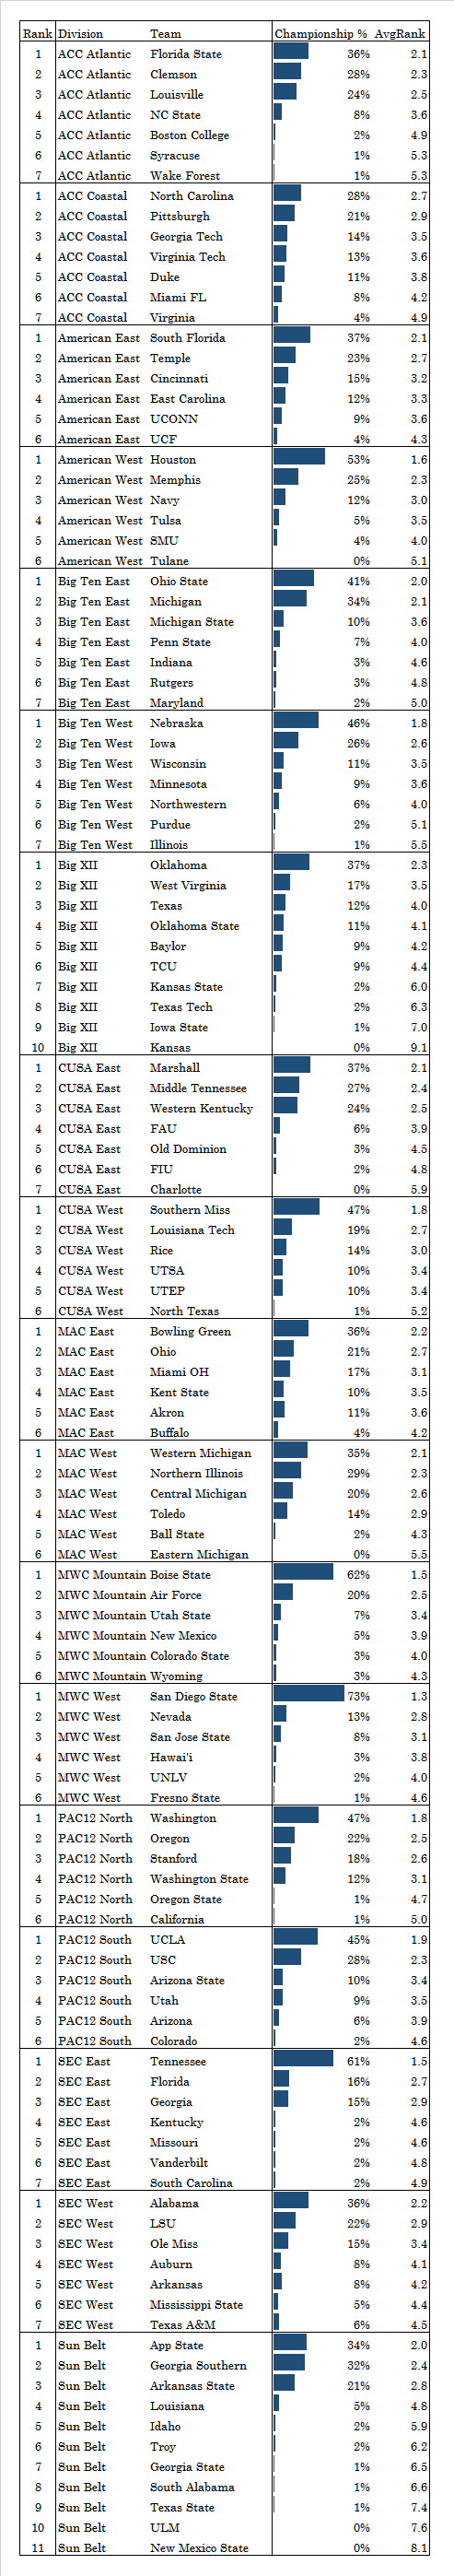 division champ probabilities